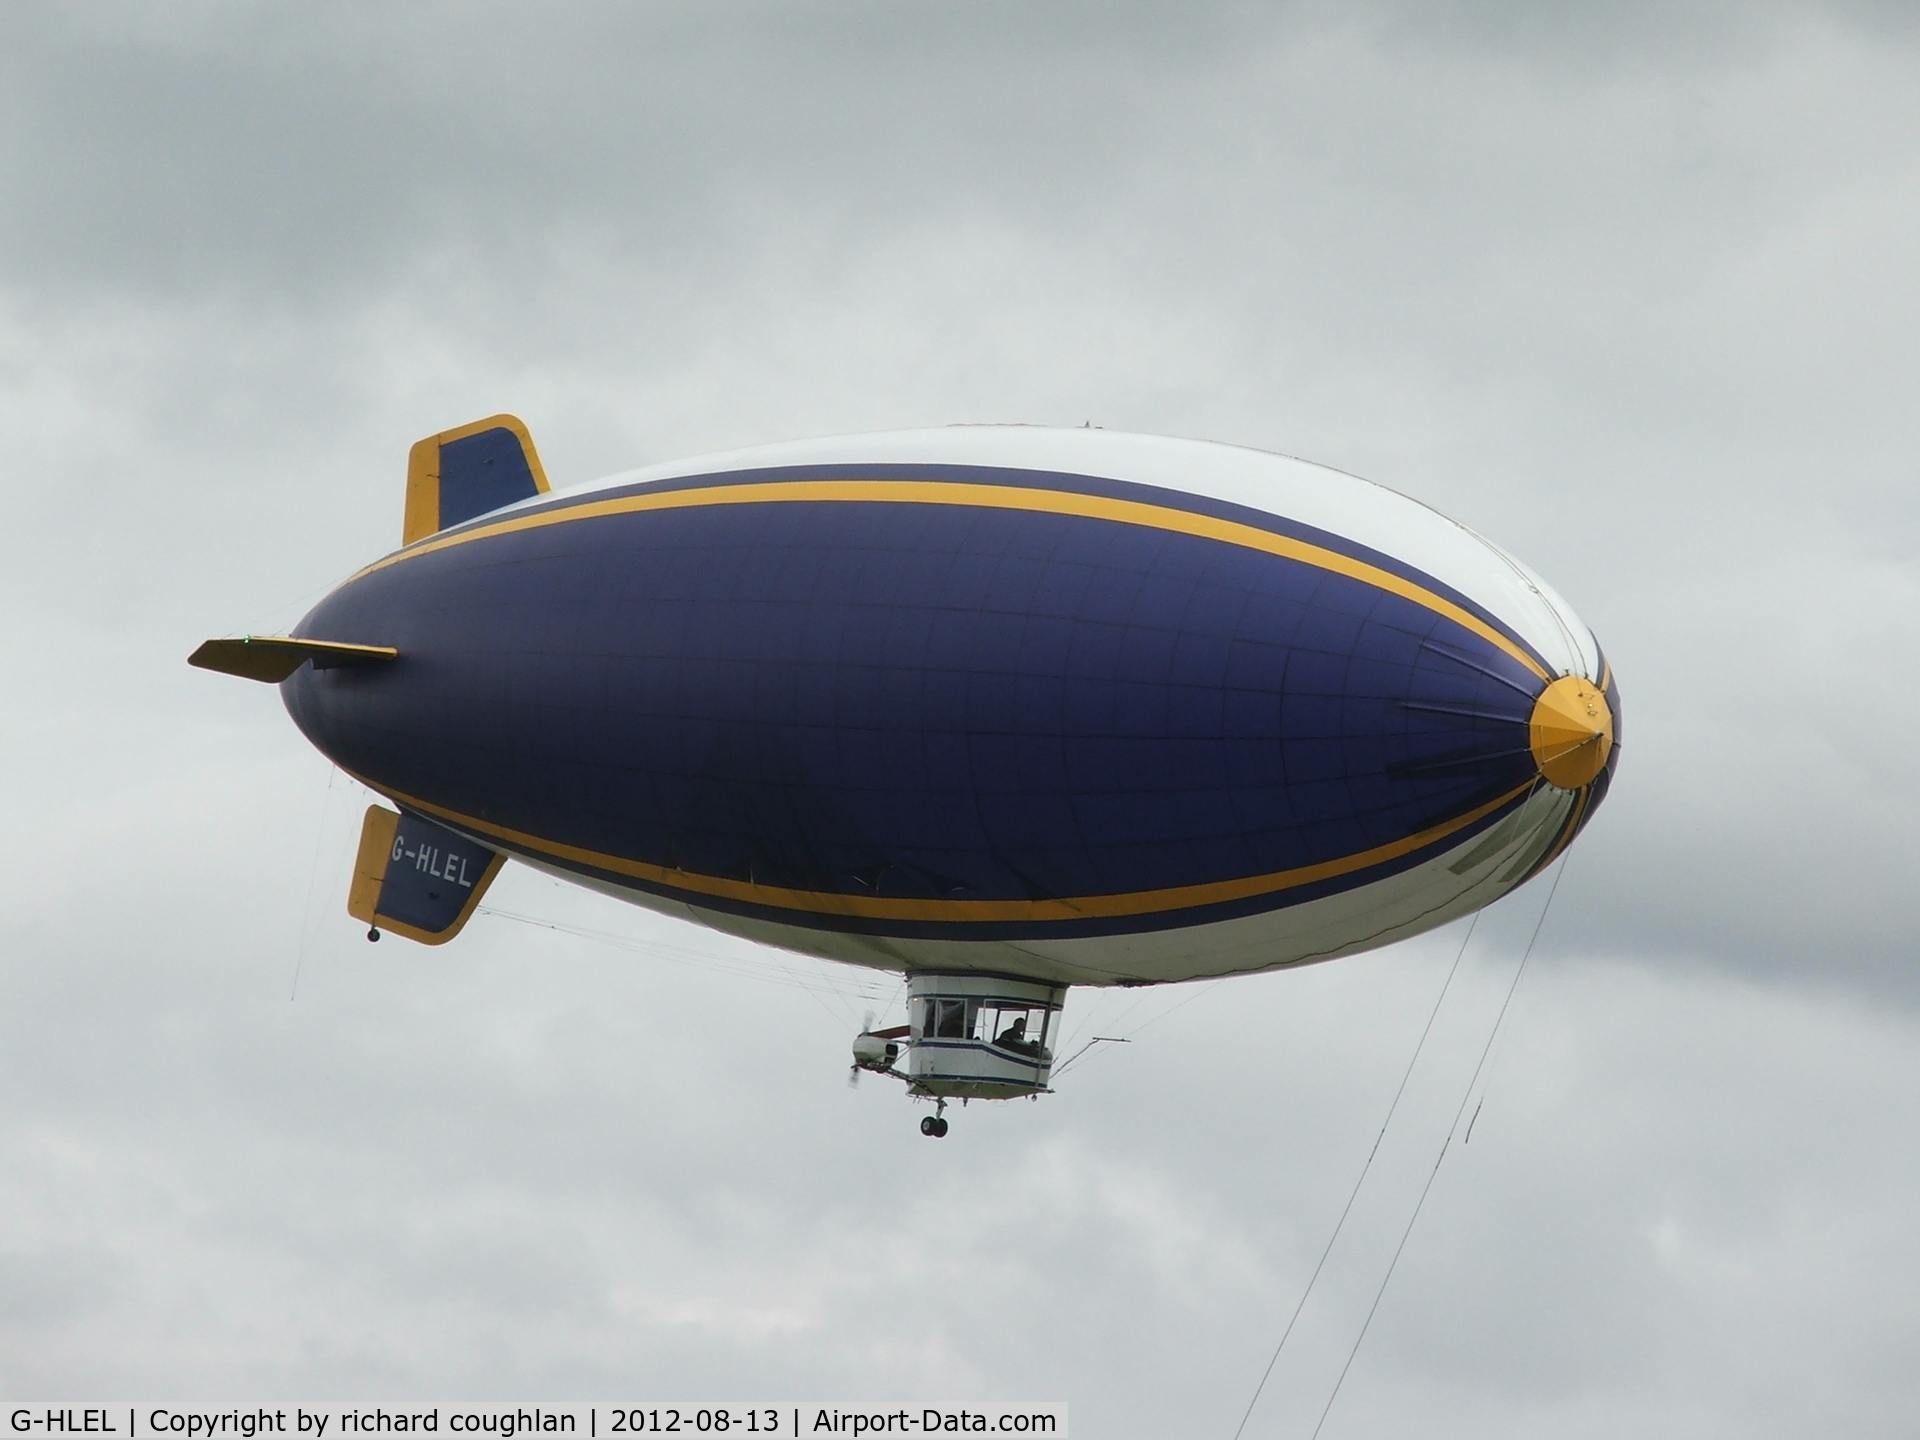 G-HLEL, 1995 American Blimp Corp A-60+ C/N 10, at Cardington hangers without Goodyear branding yesterday